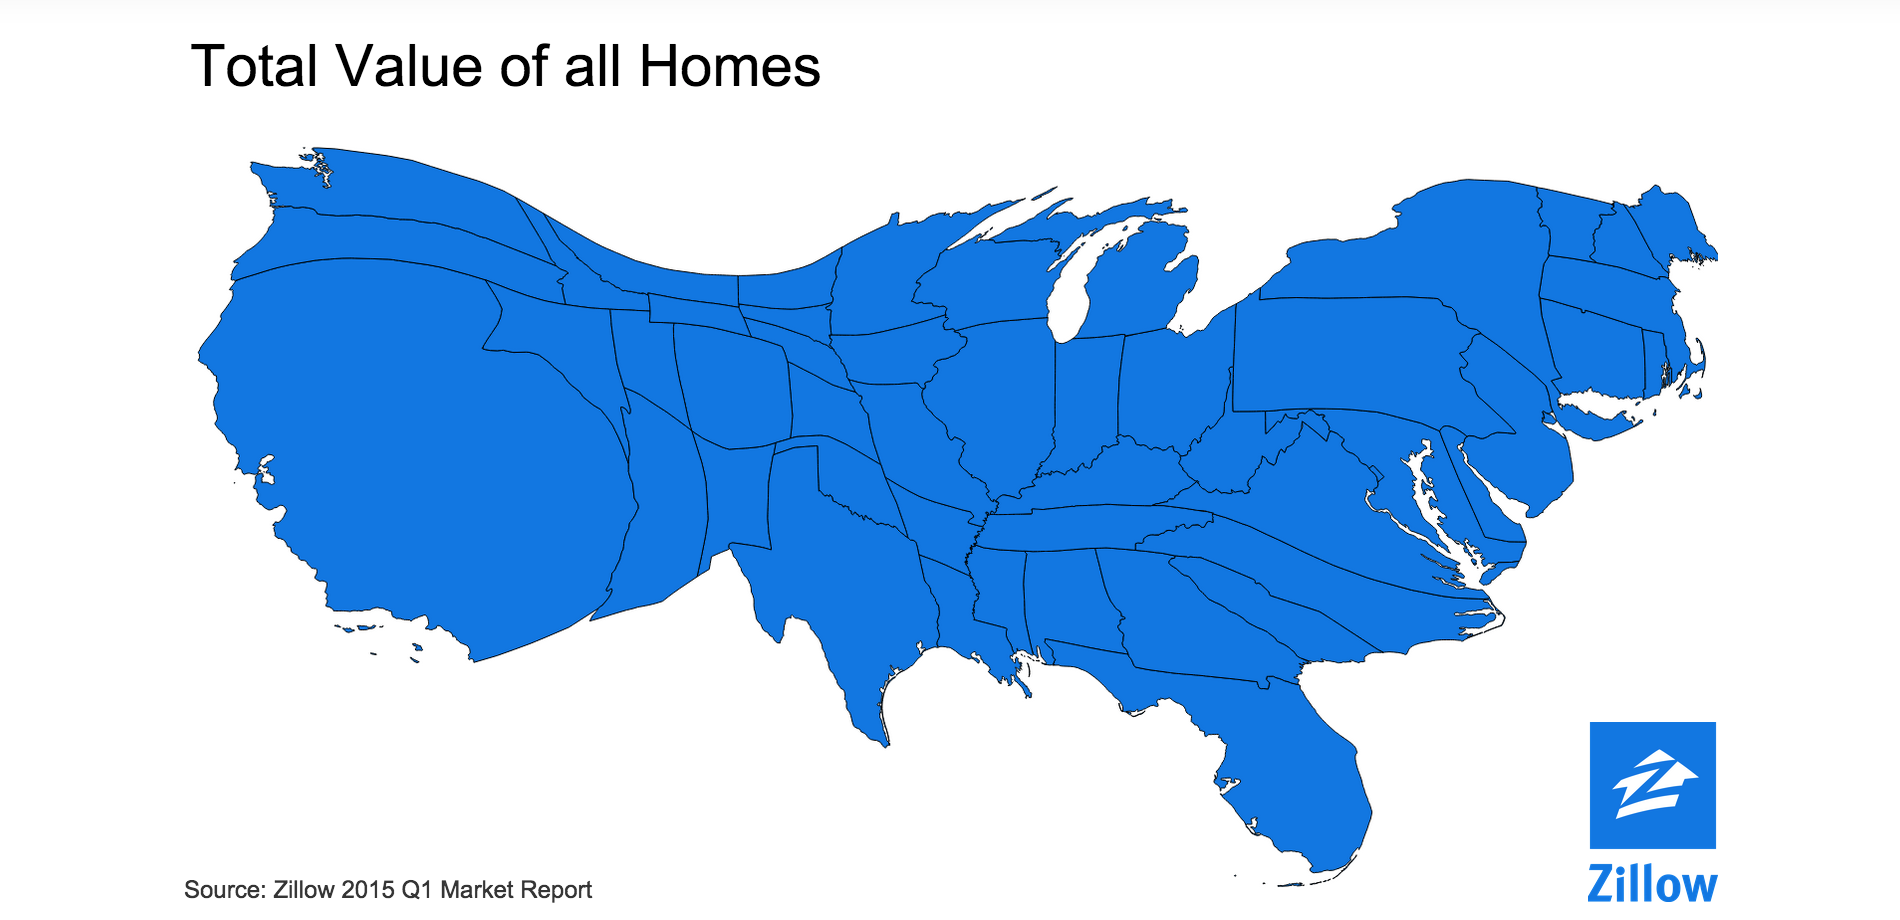 This is what America looks like if you scale each state to the